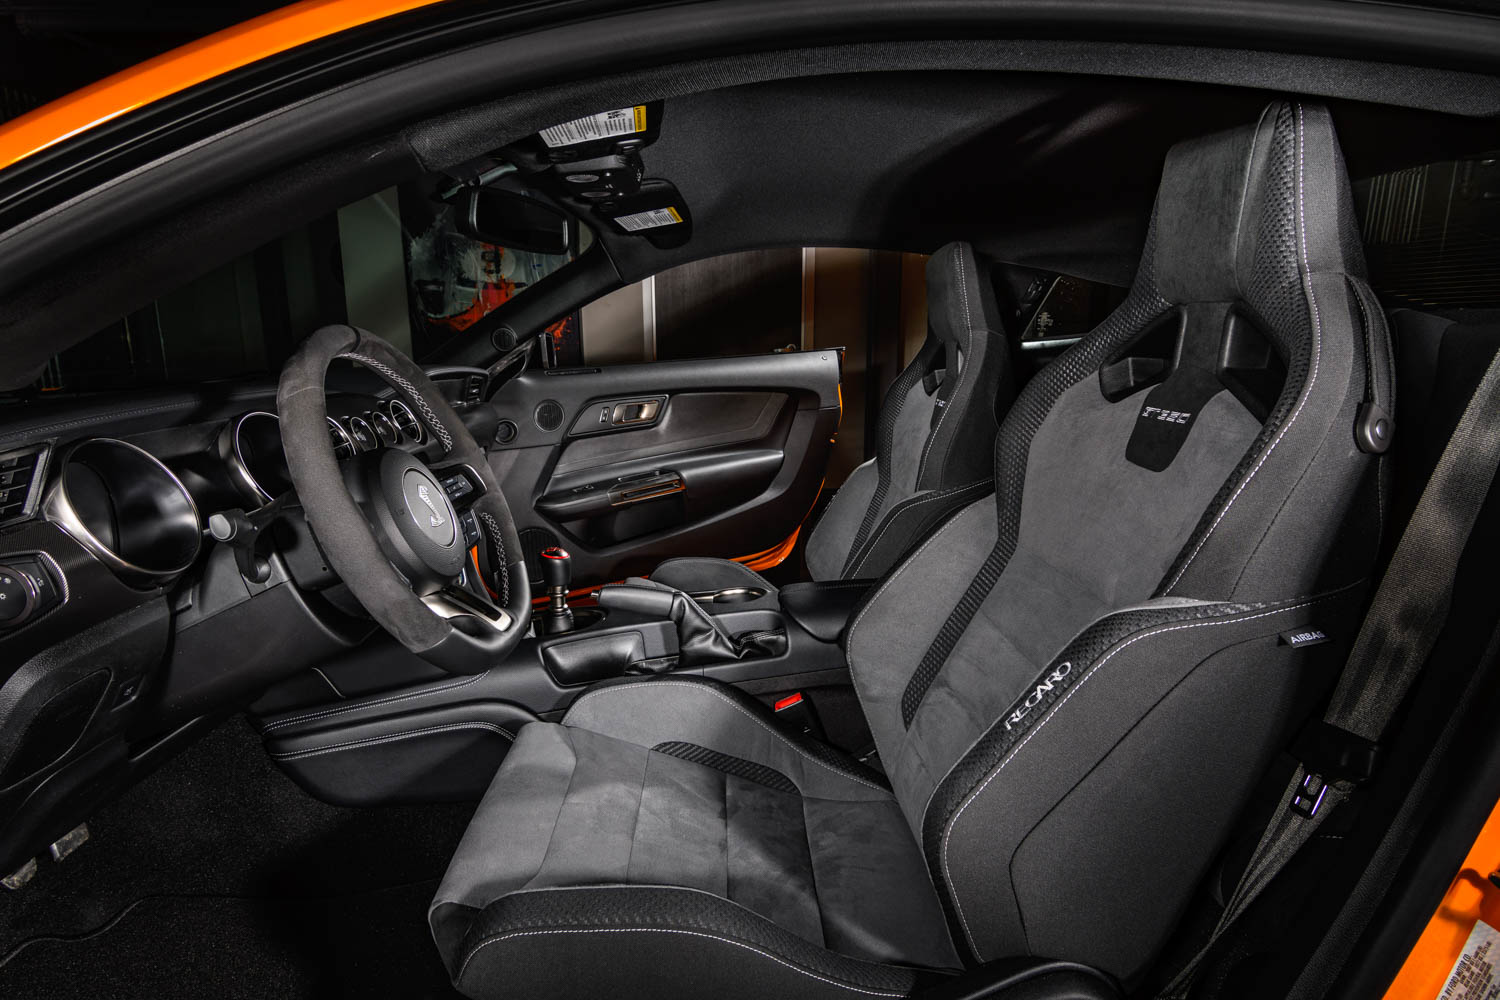 2019 Ford Mustang Shelby GT350 seat detail